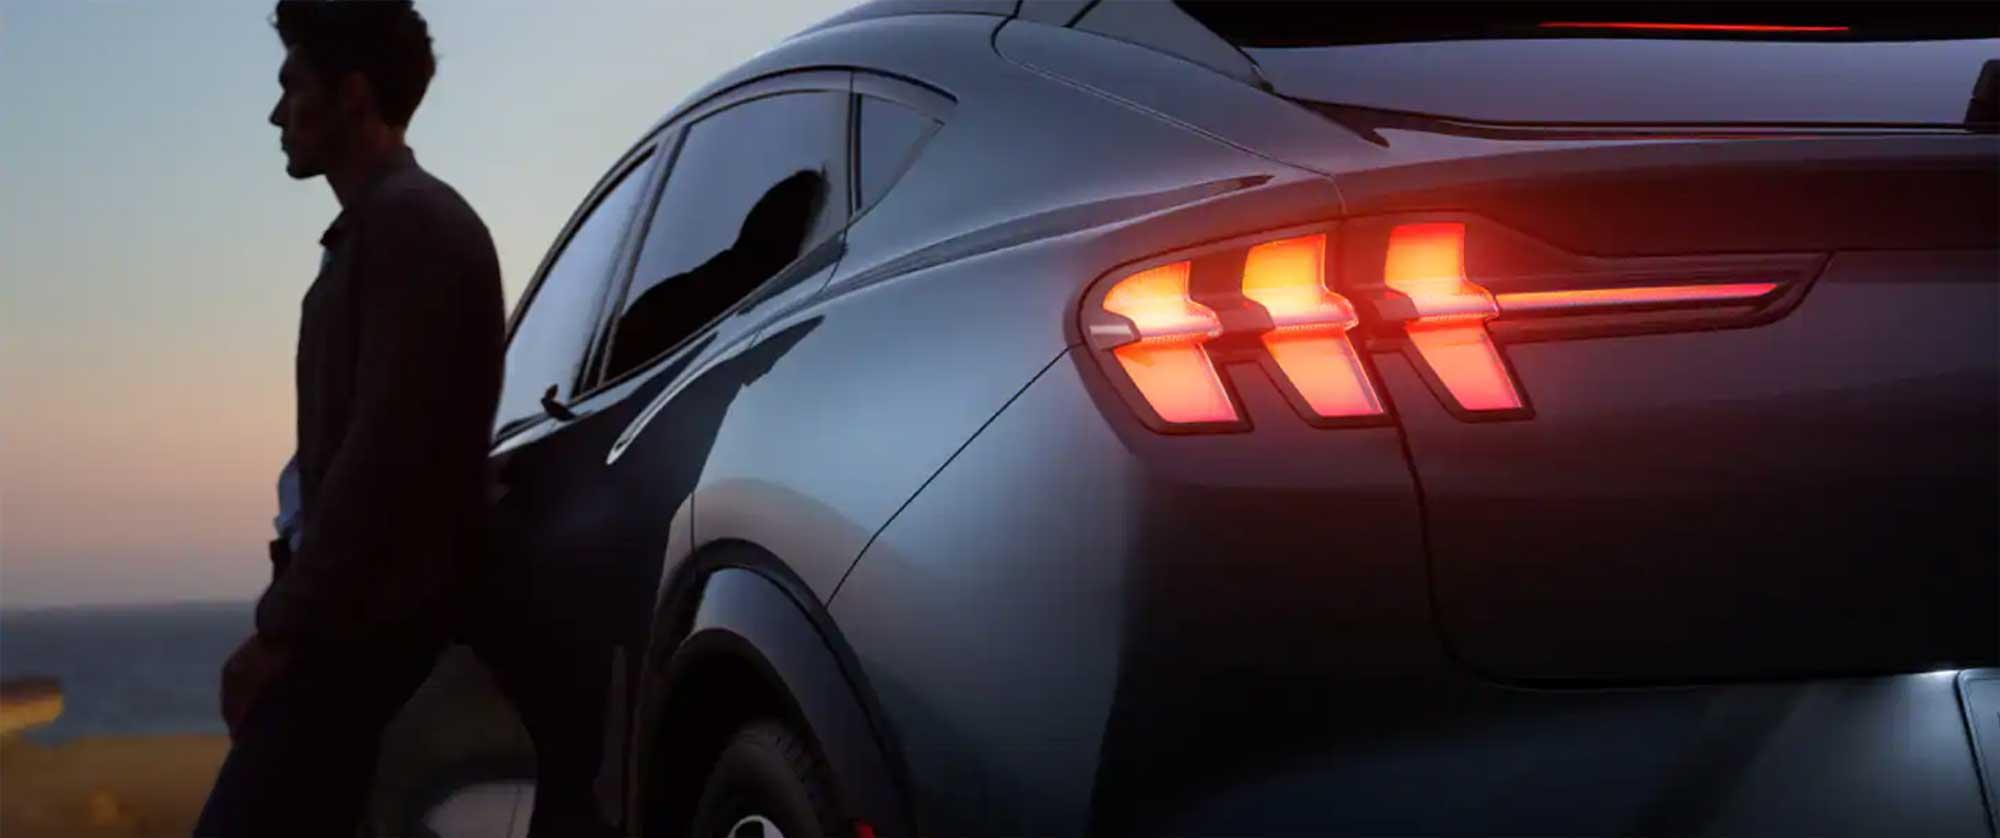 The 2021 Ford Mustang Mach-E. Truly electric.